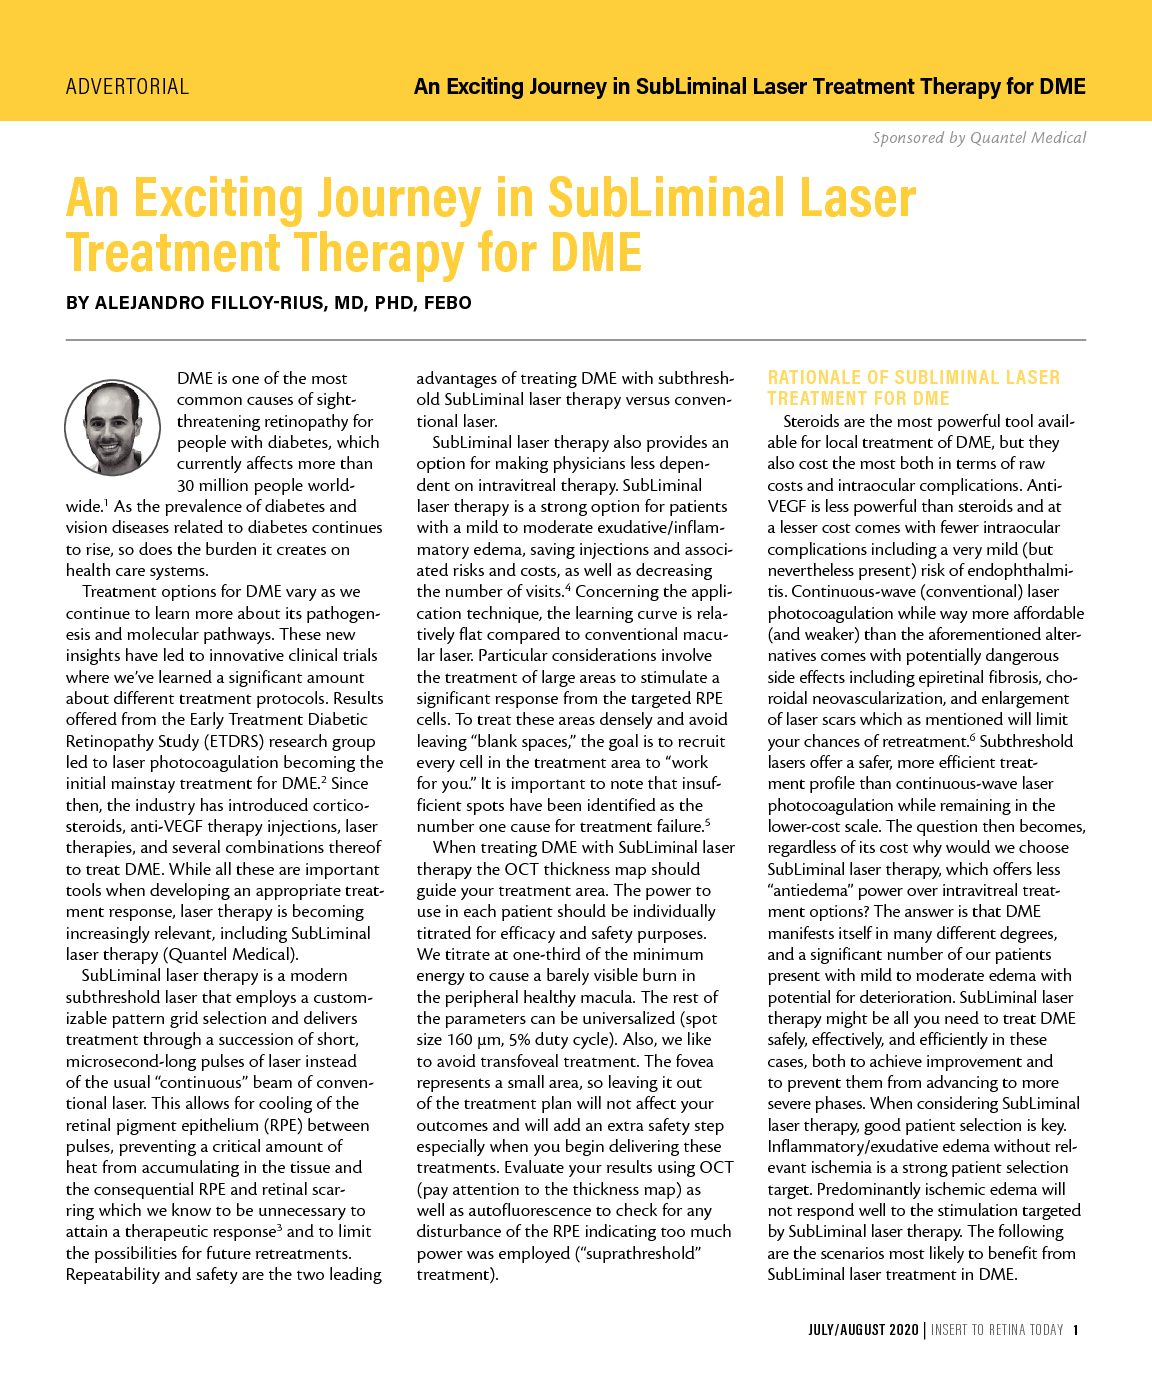 An Exciting Journey in SubLiminal Laser Treatment Therapy for DME